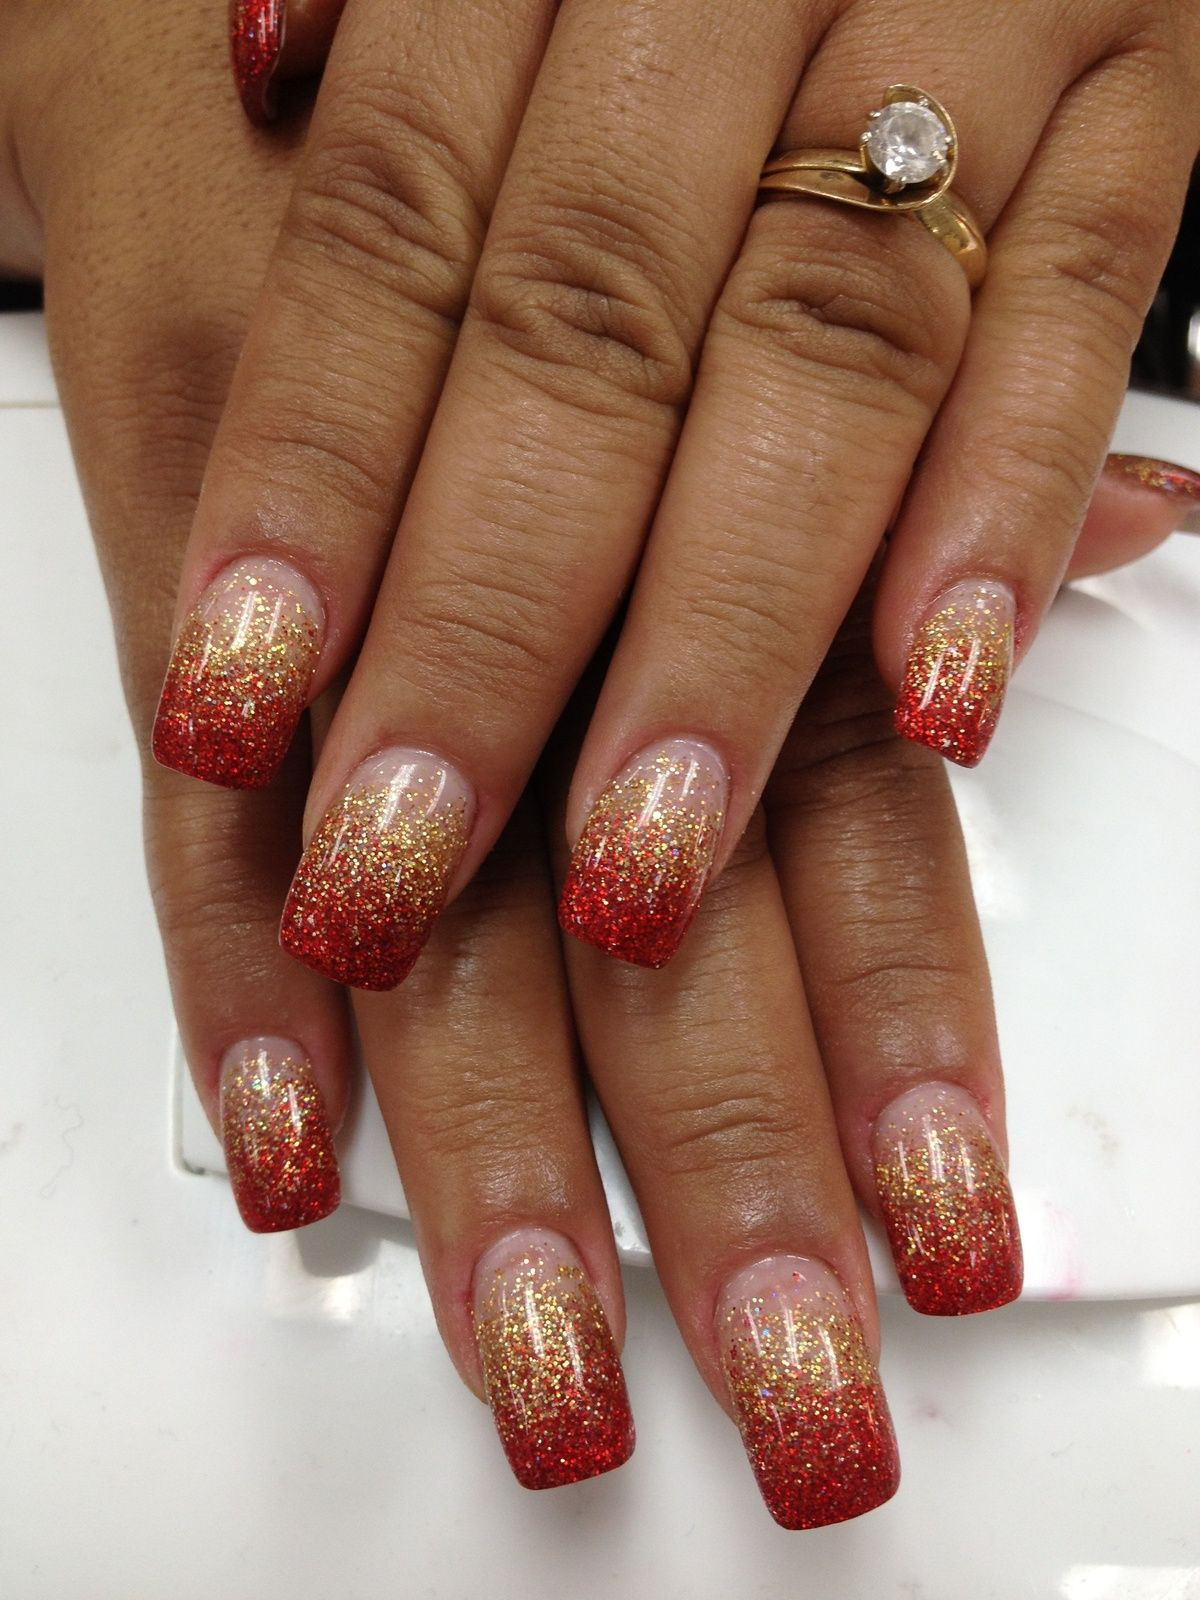 Red and gold | Nails/Hair/Makeup | Pinterest | Gold, Prom and Prom nails